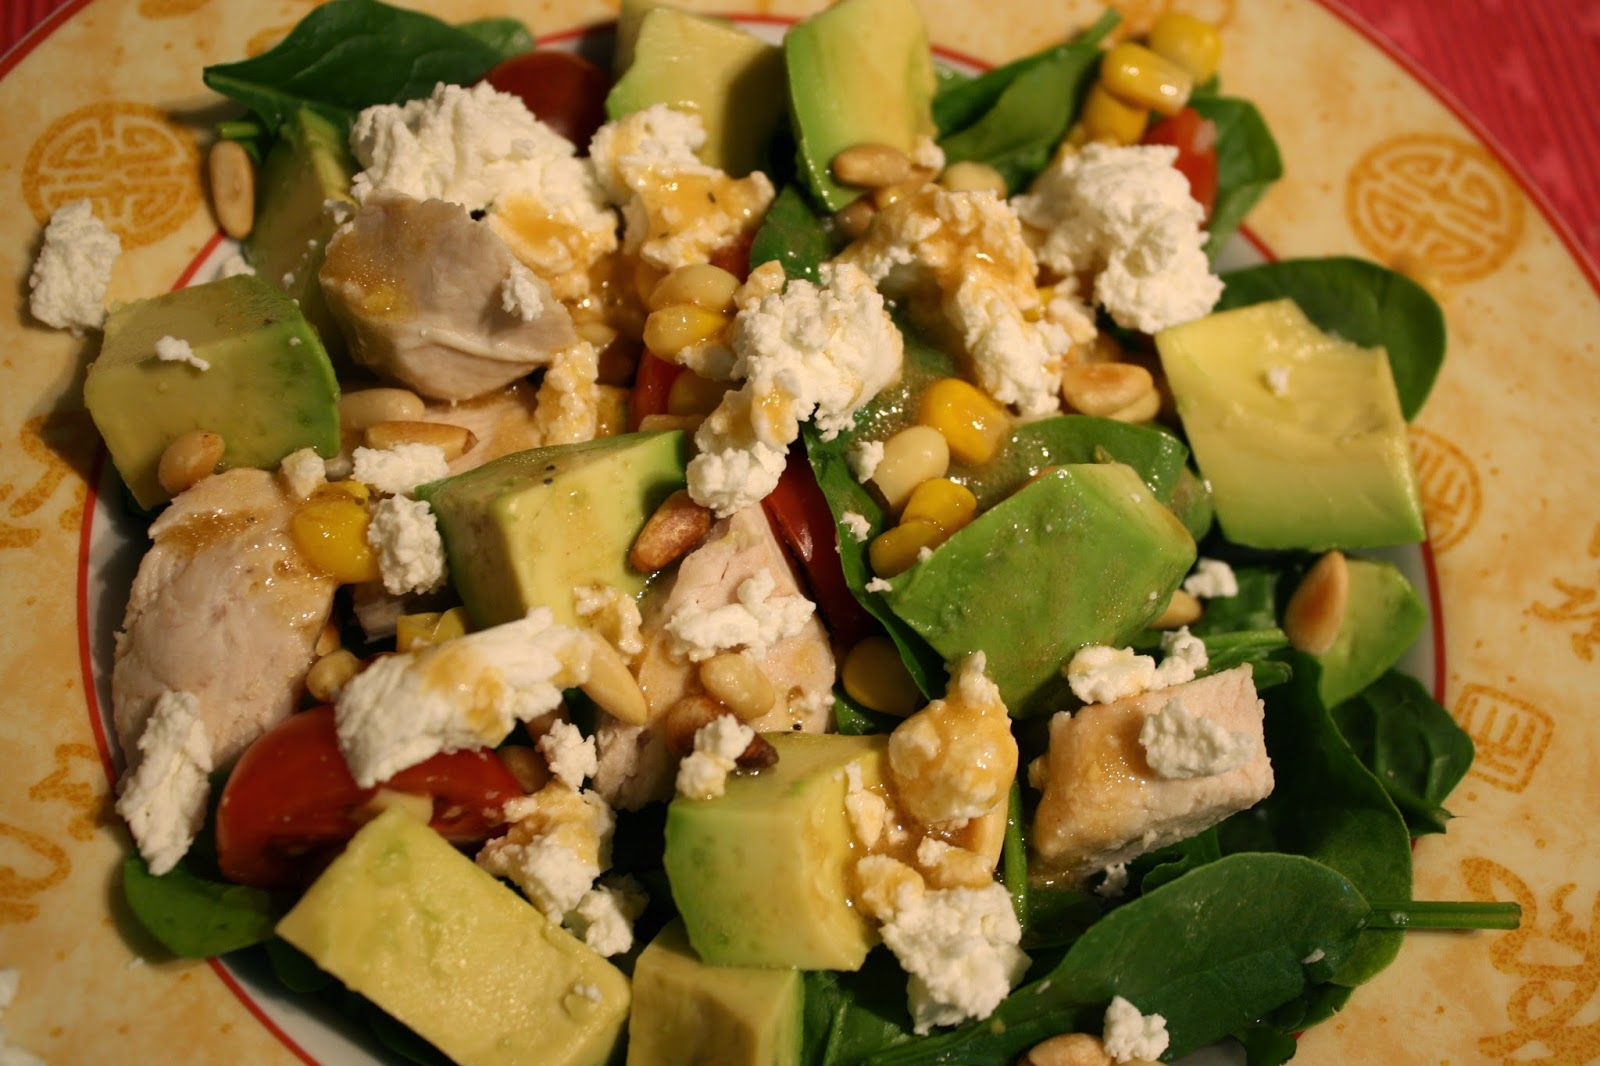 Lactose-Free Girl: Spinach Salad with Chicken, Avocado and Goat Cheese